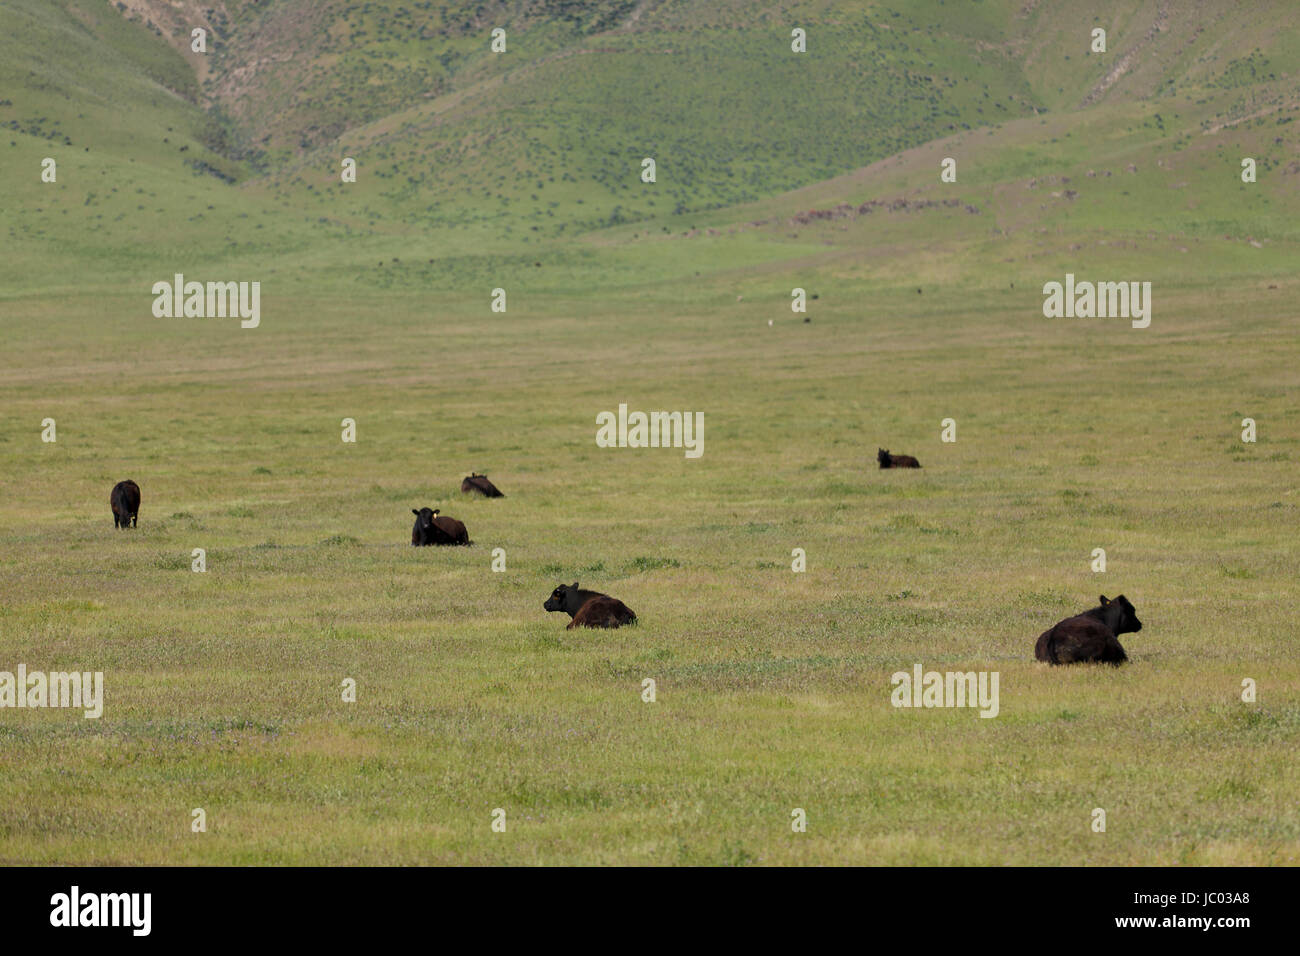 Free range cattle on Central California grass meadows - California USA - Stock Image